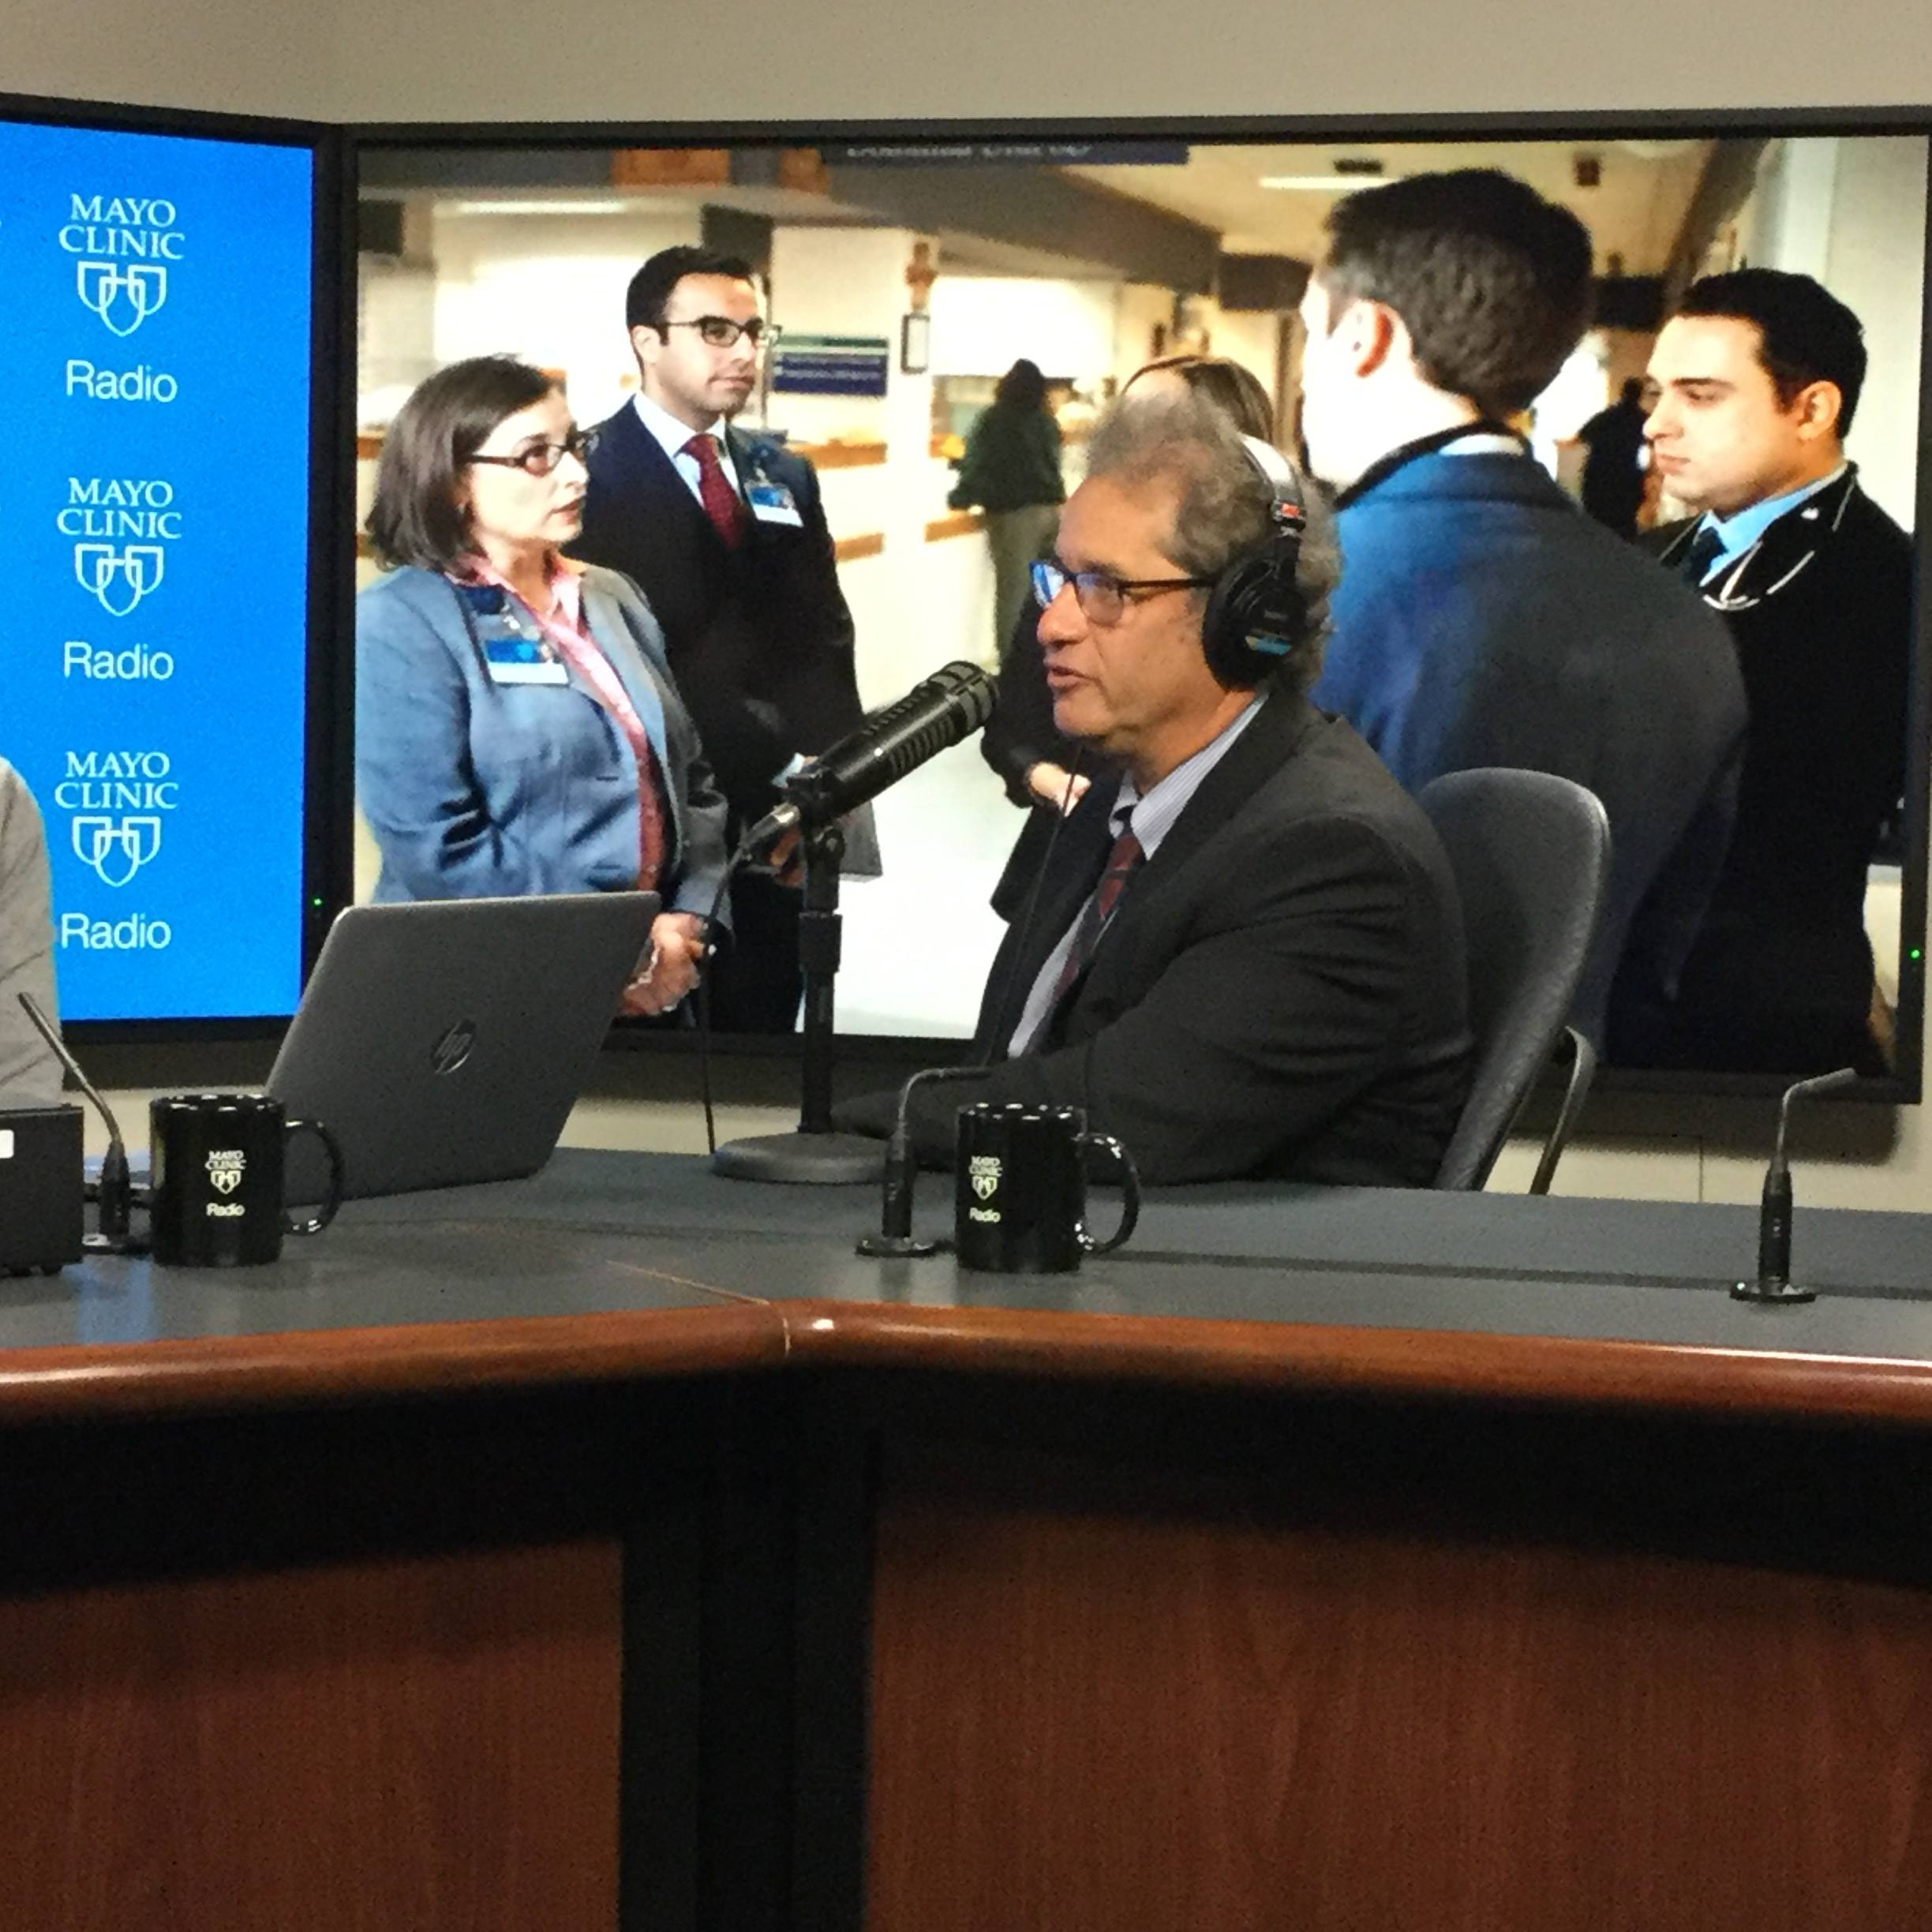 Dr. Fredric Meyer being interviewed on Mayo Clinic Radio